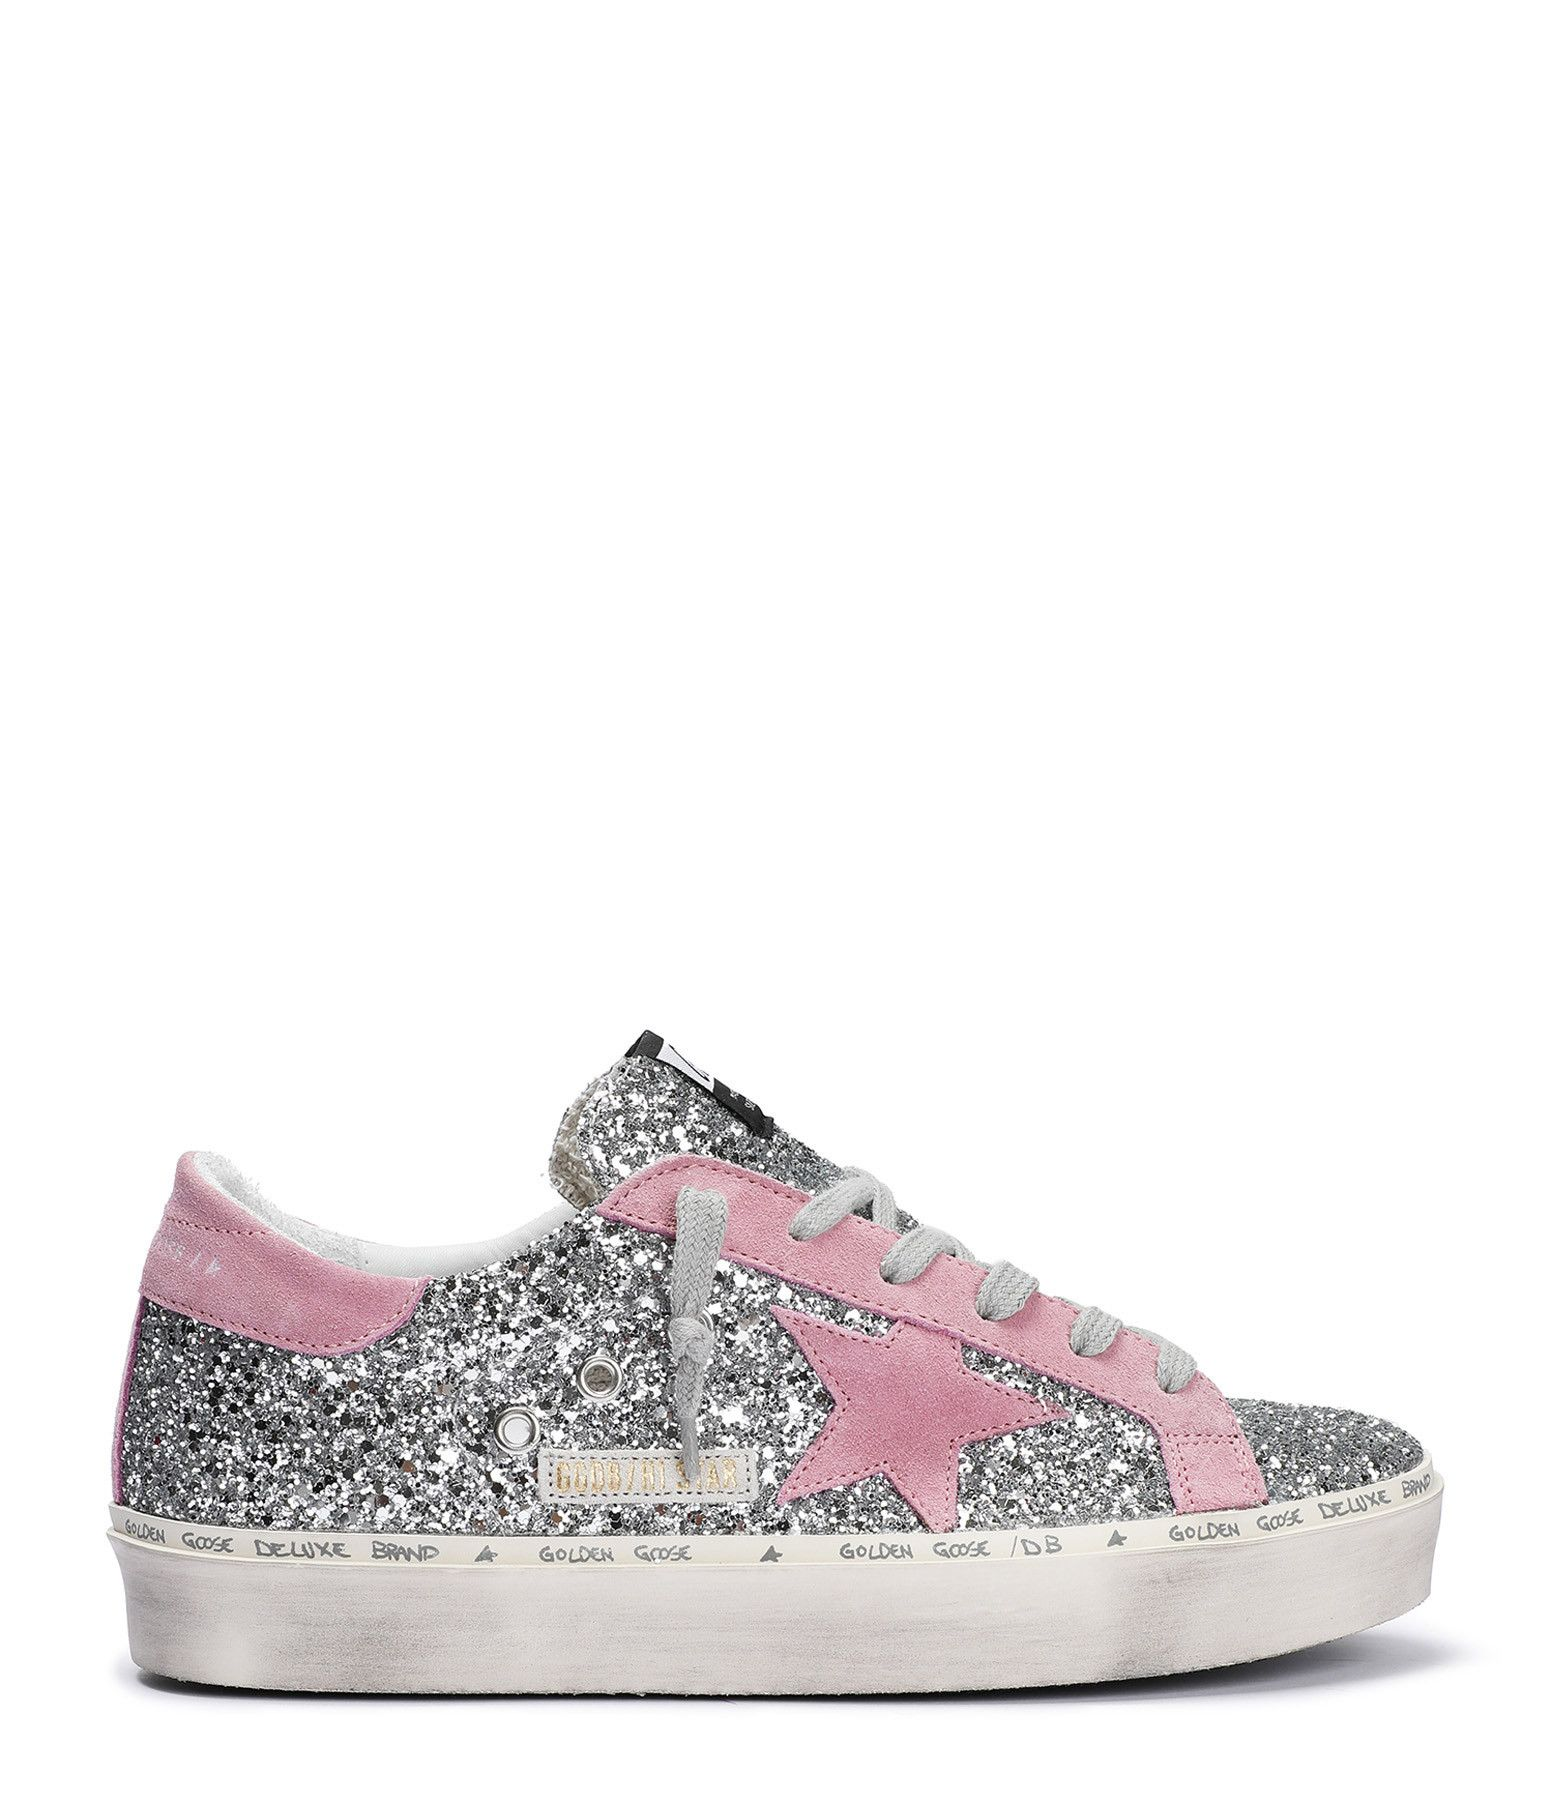 Baskets Hi Star Paillettes Cuir Argenté Rose en 2020